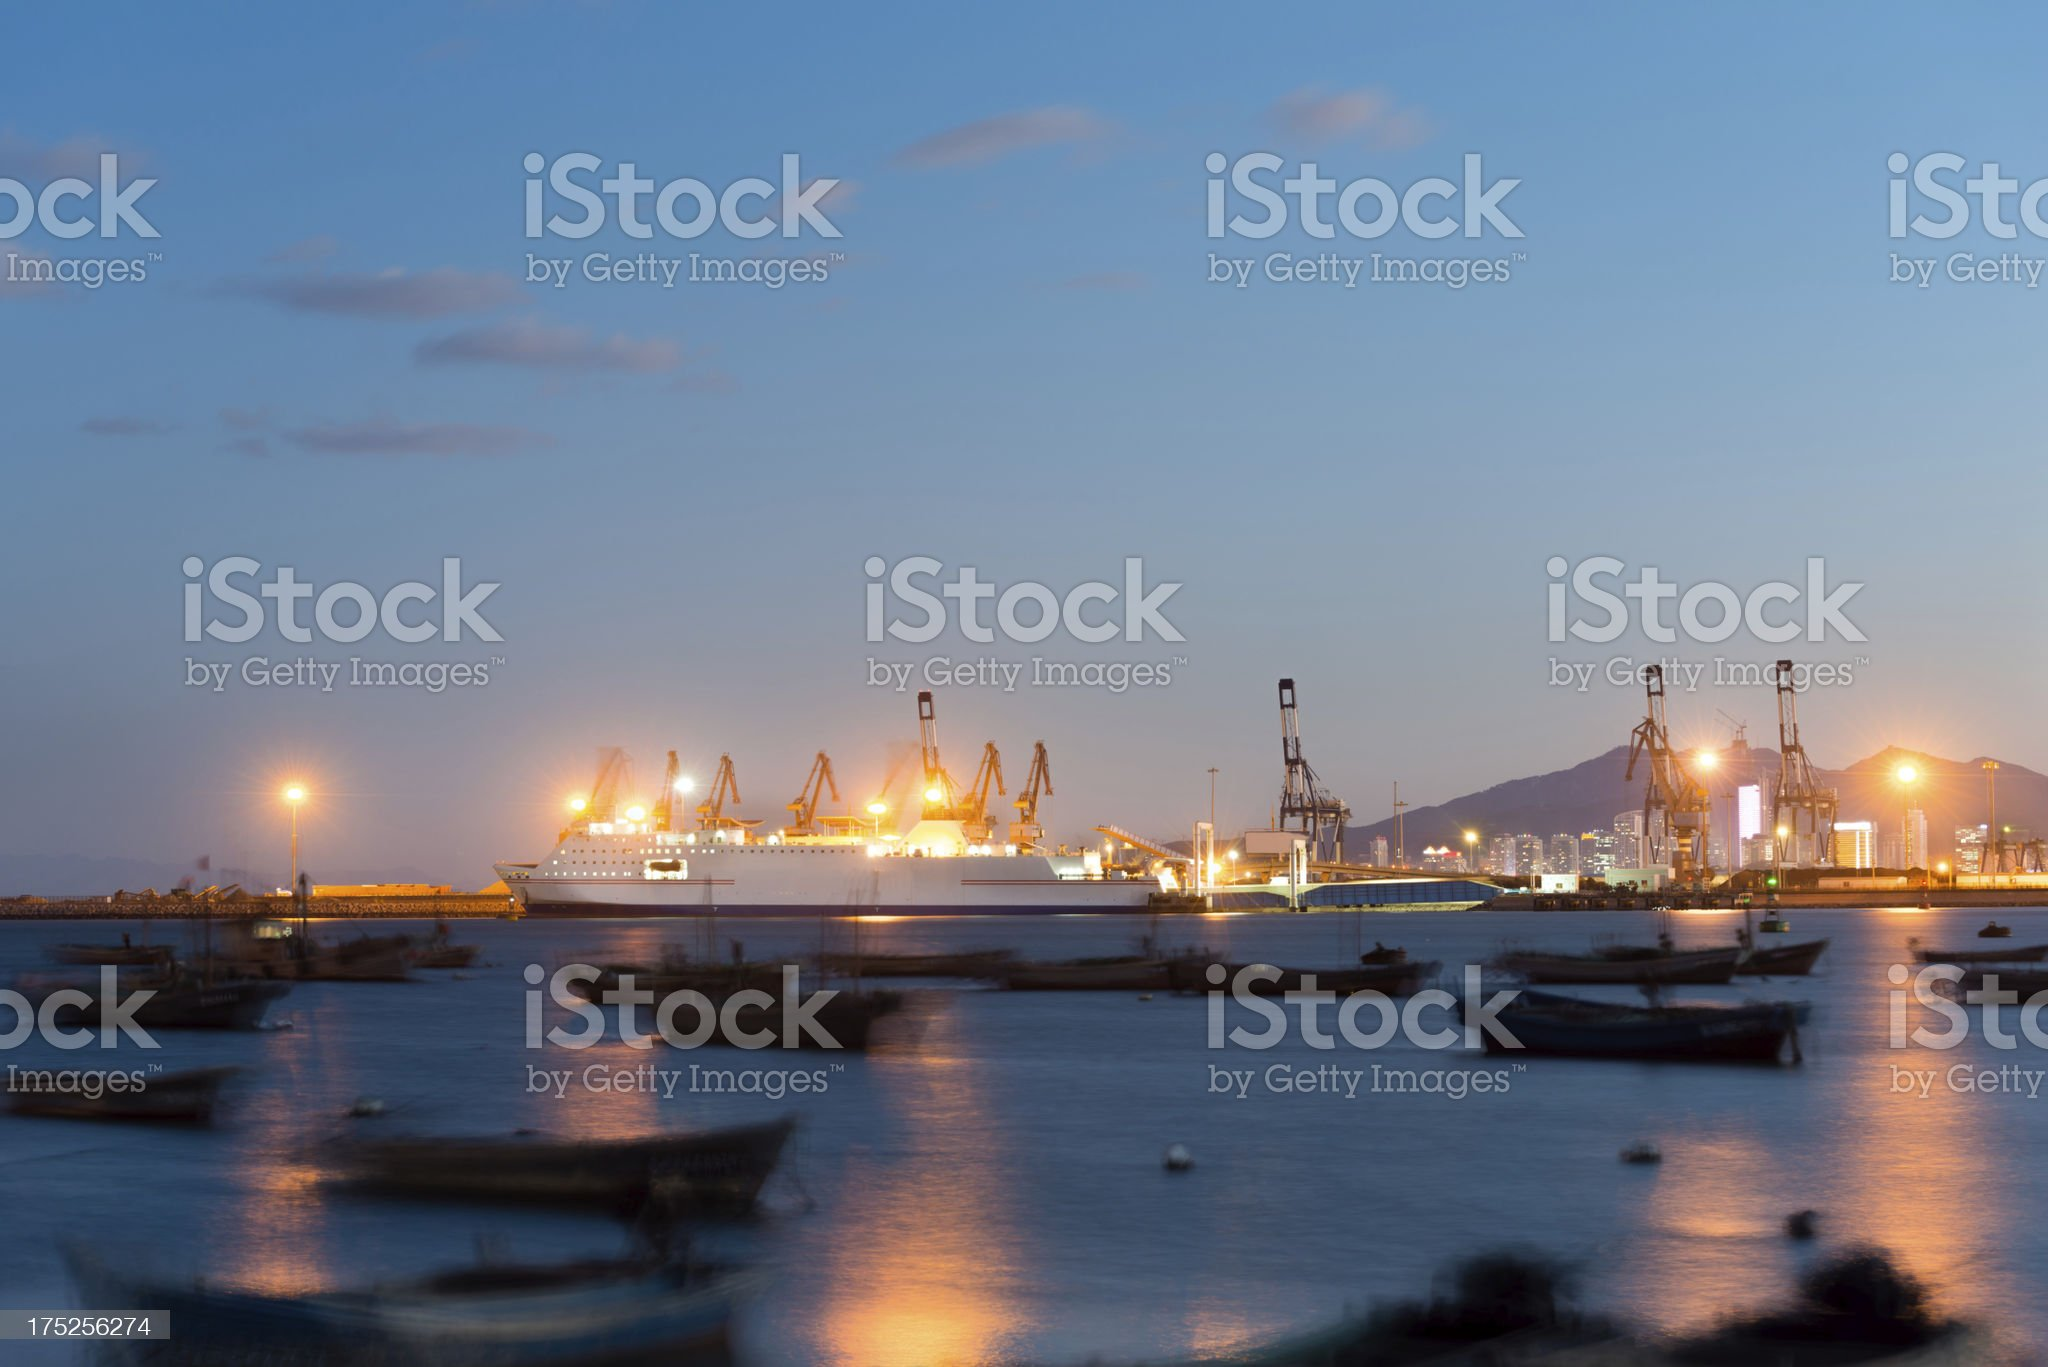 Commercial Dock Cruise Ship royalty-free stock photo